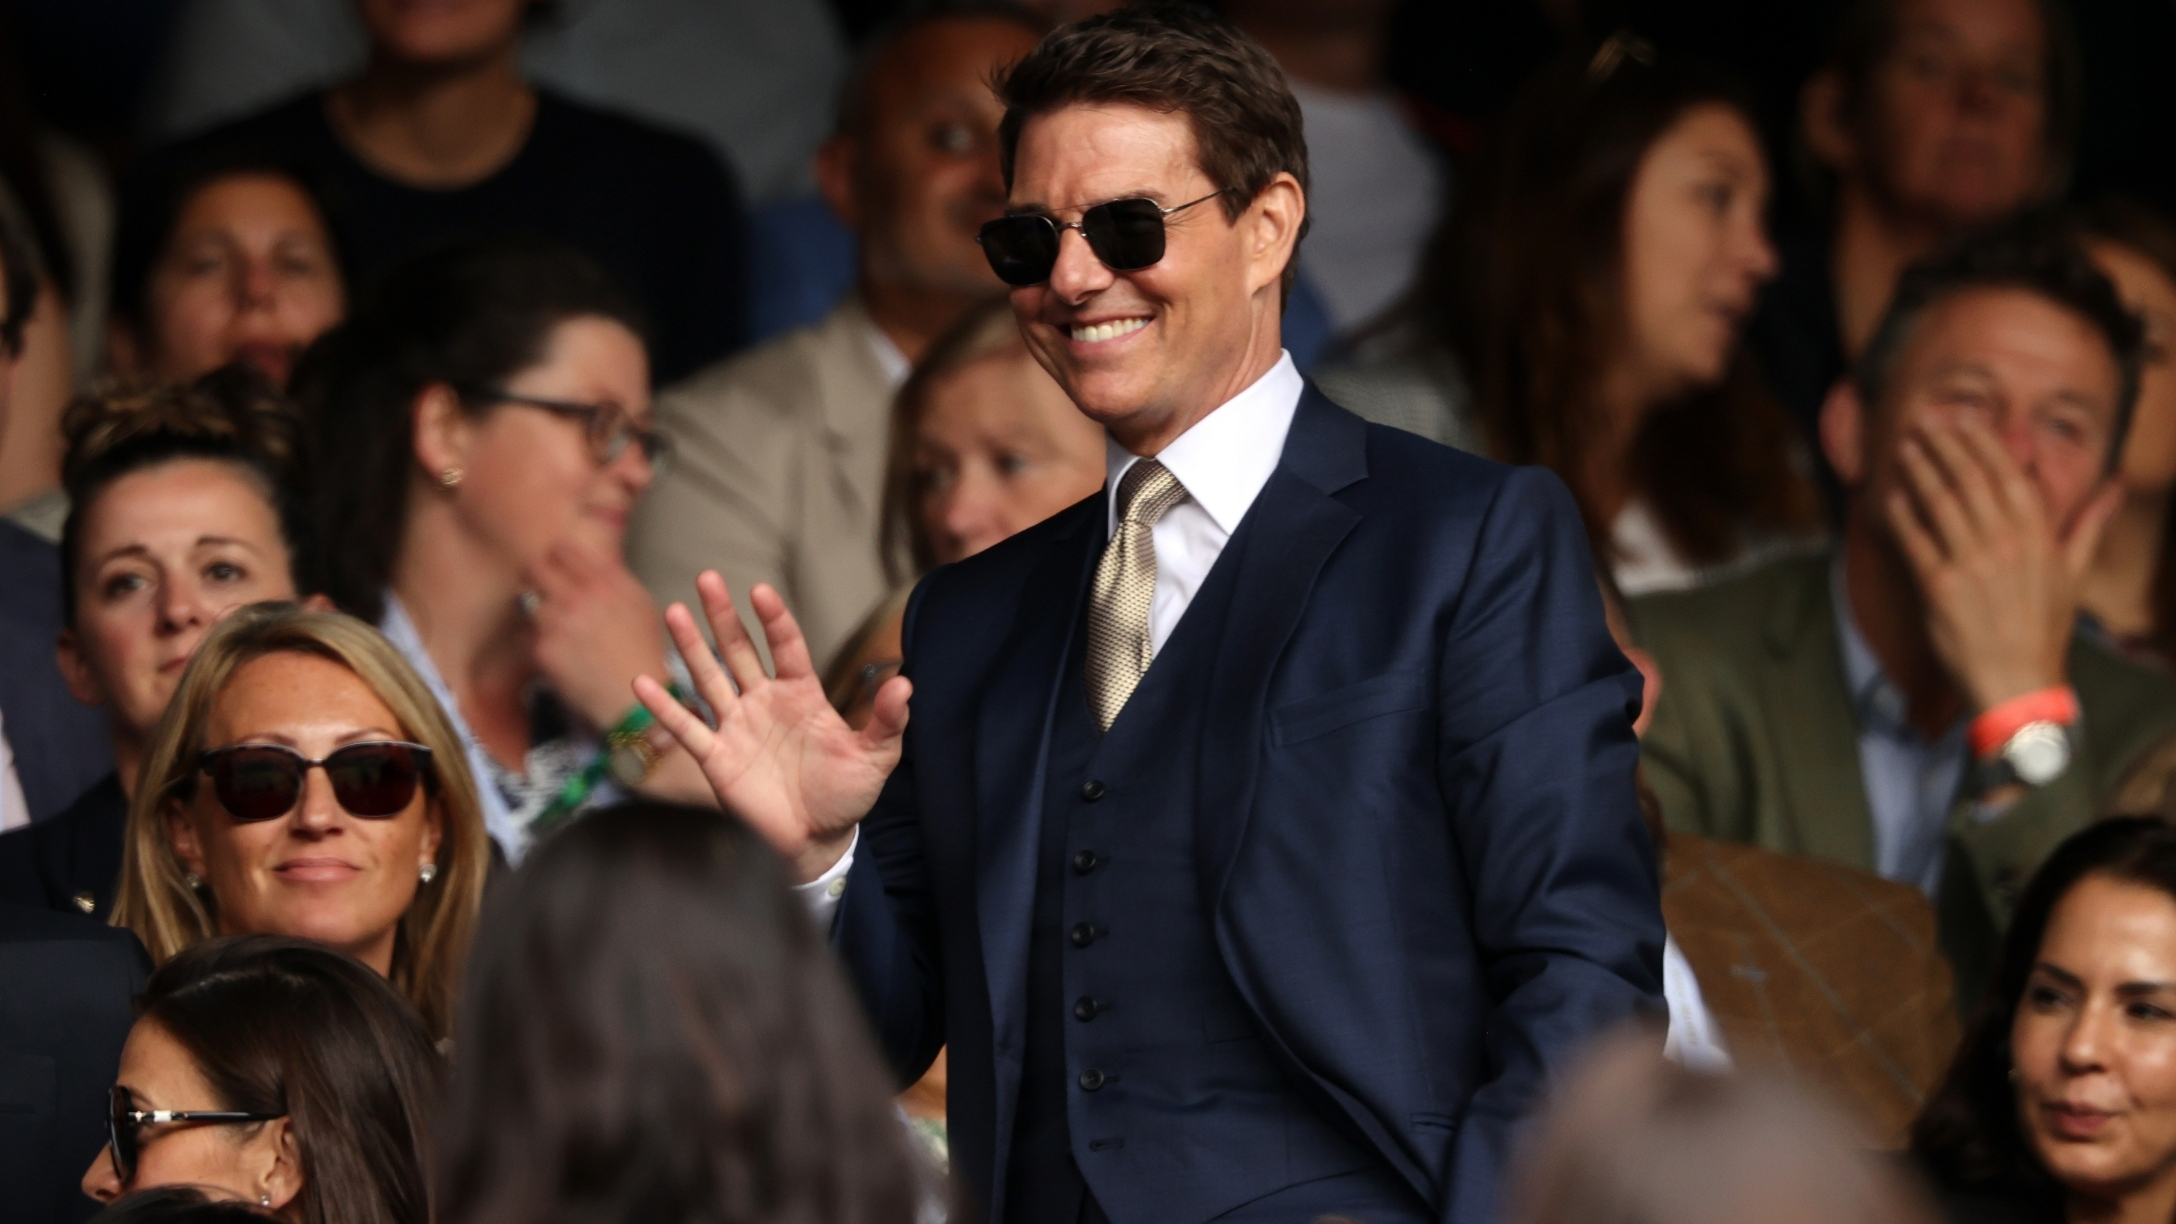 Tom Cruise's new look shocked fans, sparking plastic surgery rumors